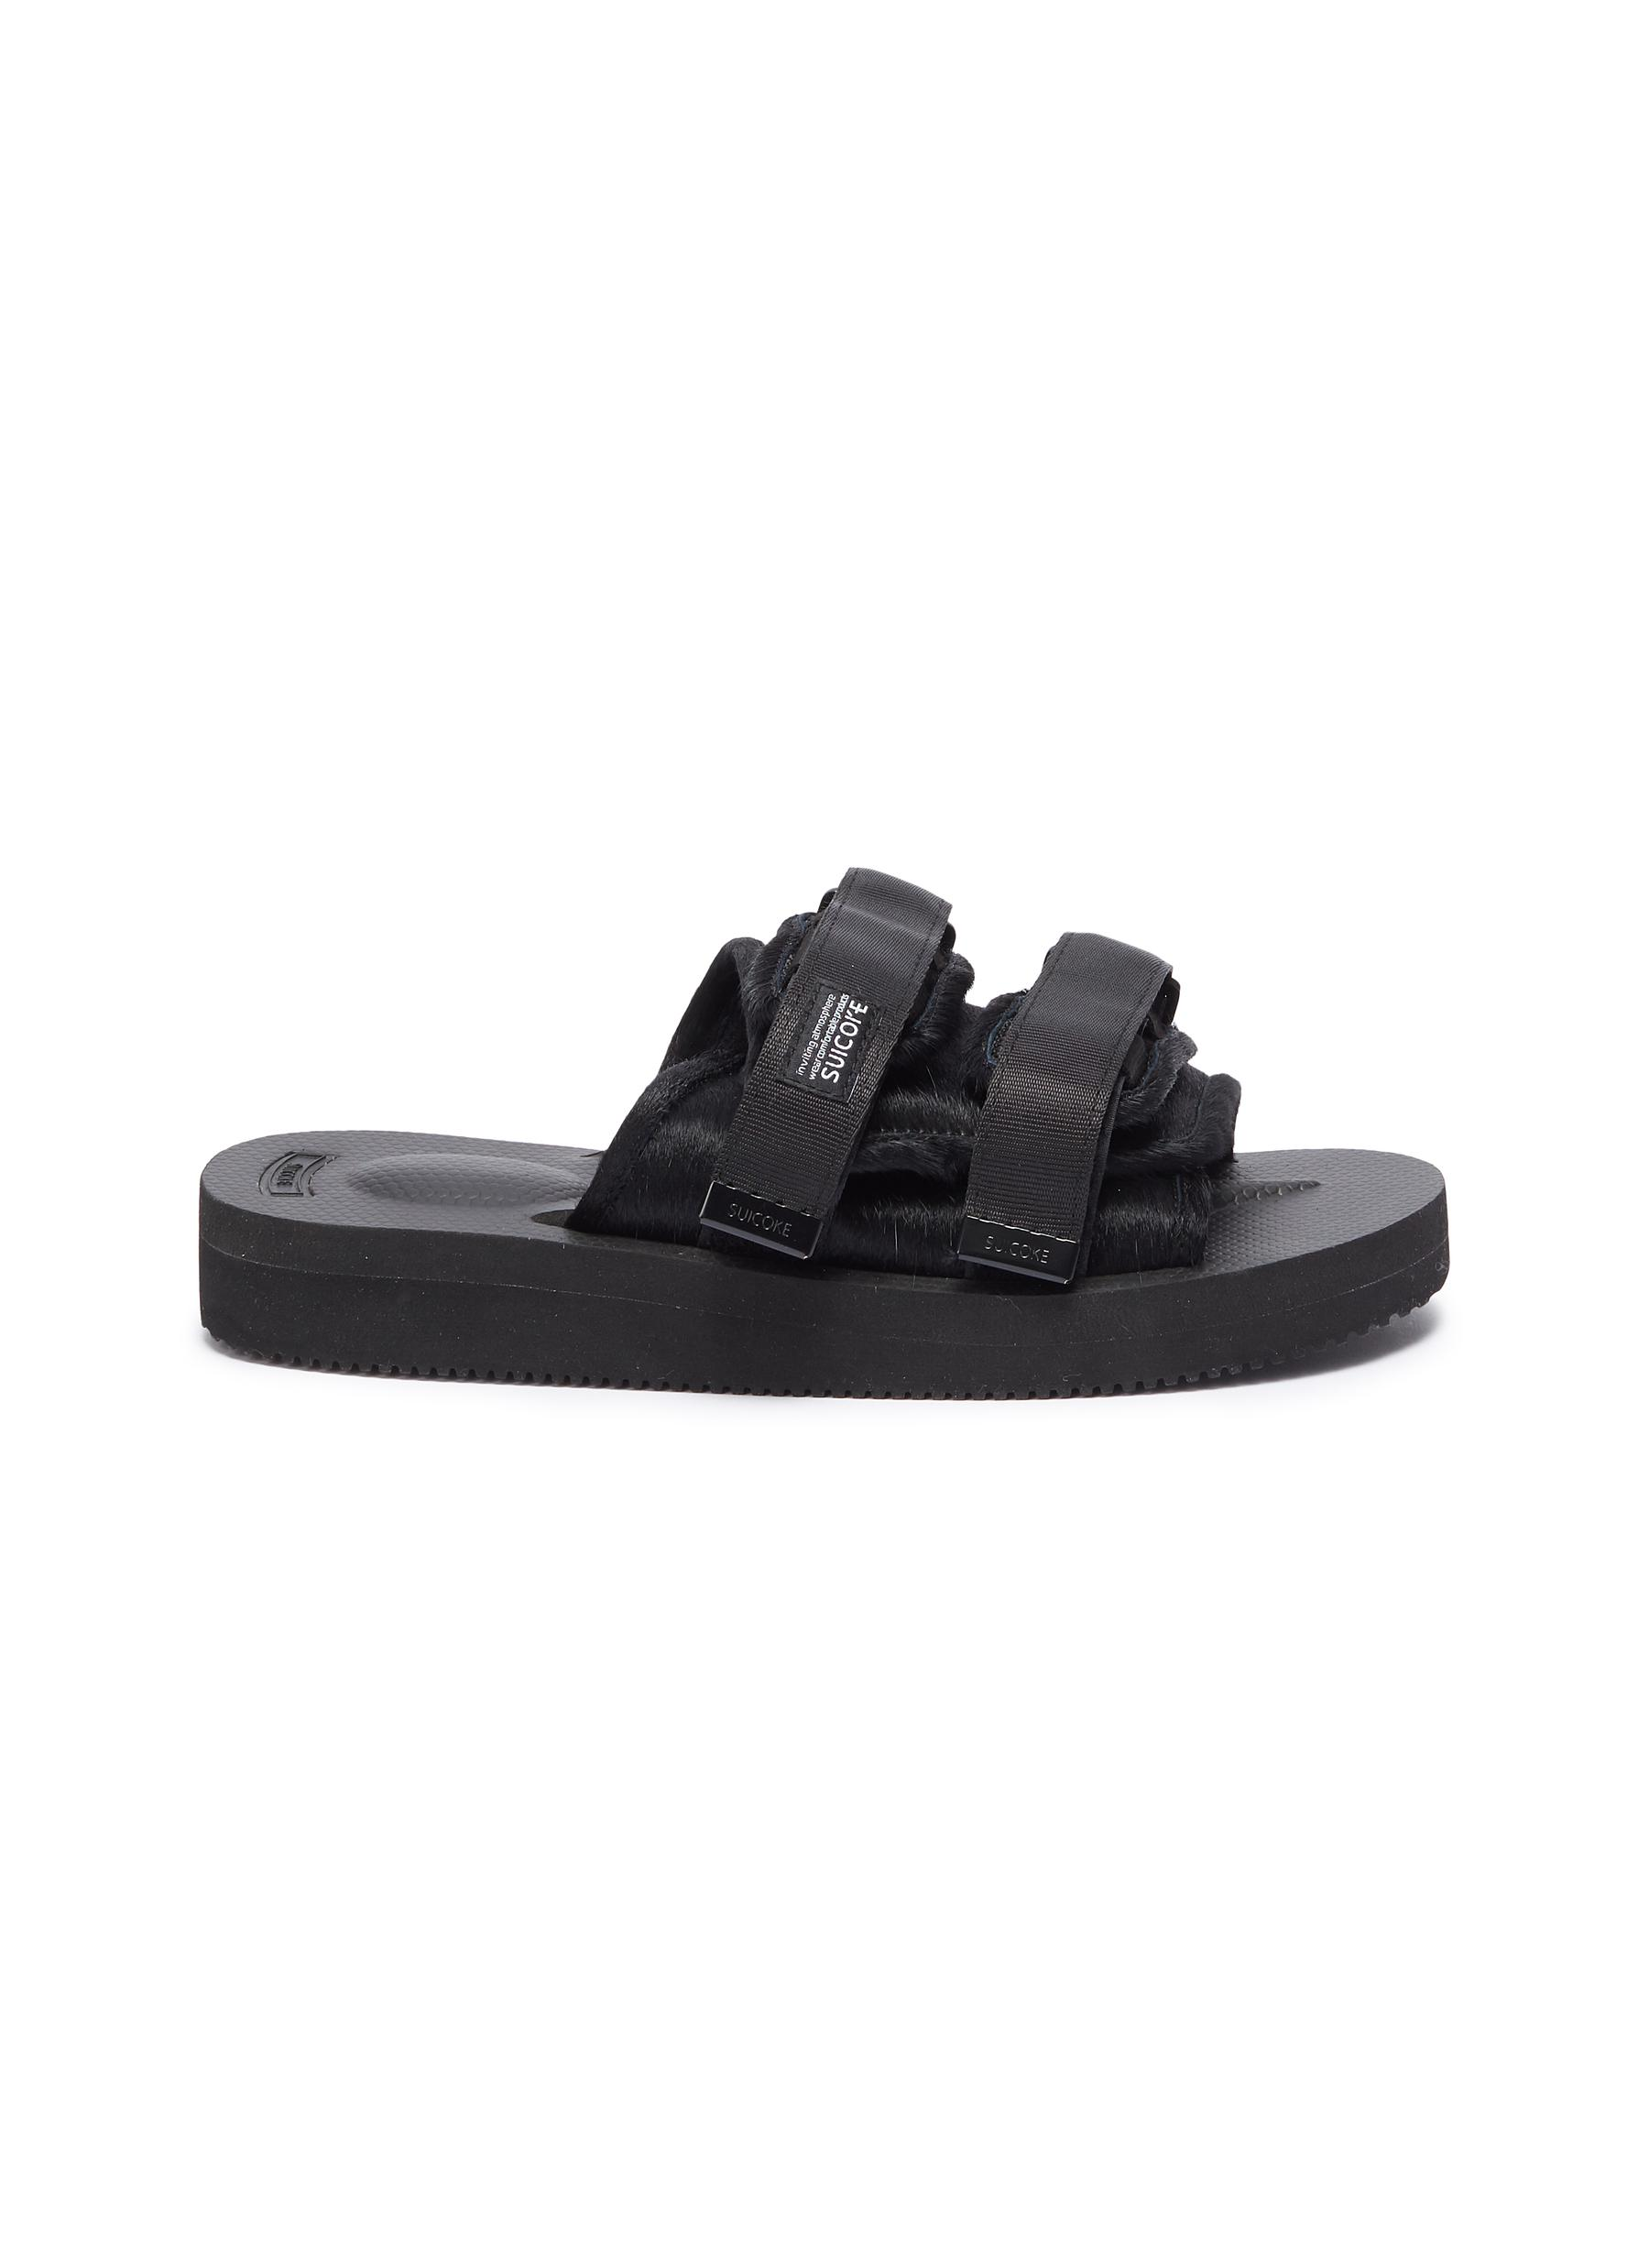 MOTO-VHL strappy band calf hair slide sandals by Suicoke